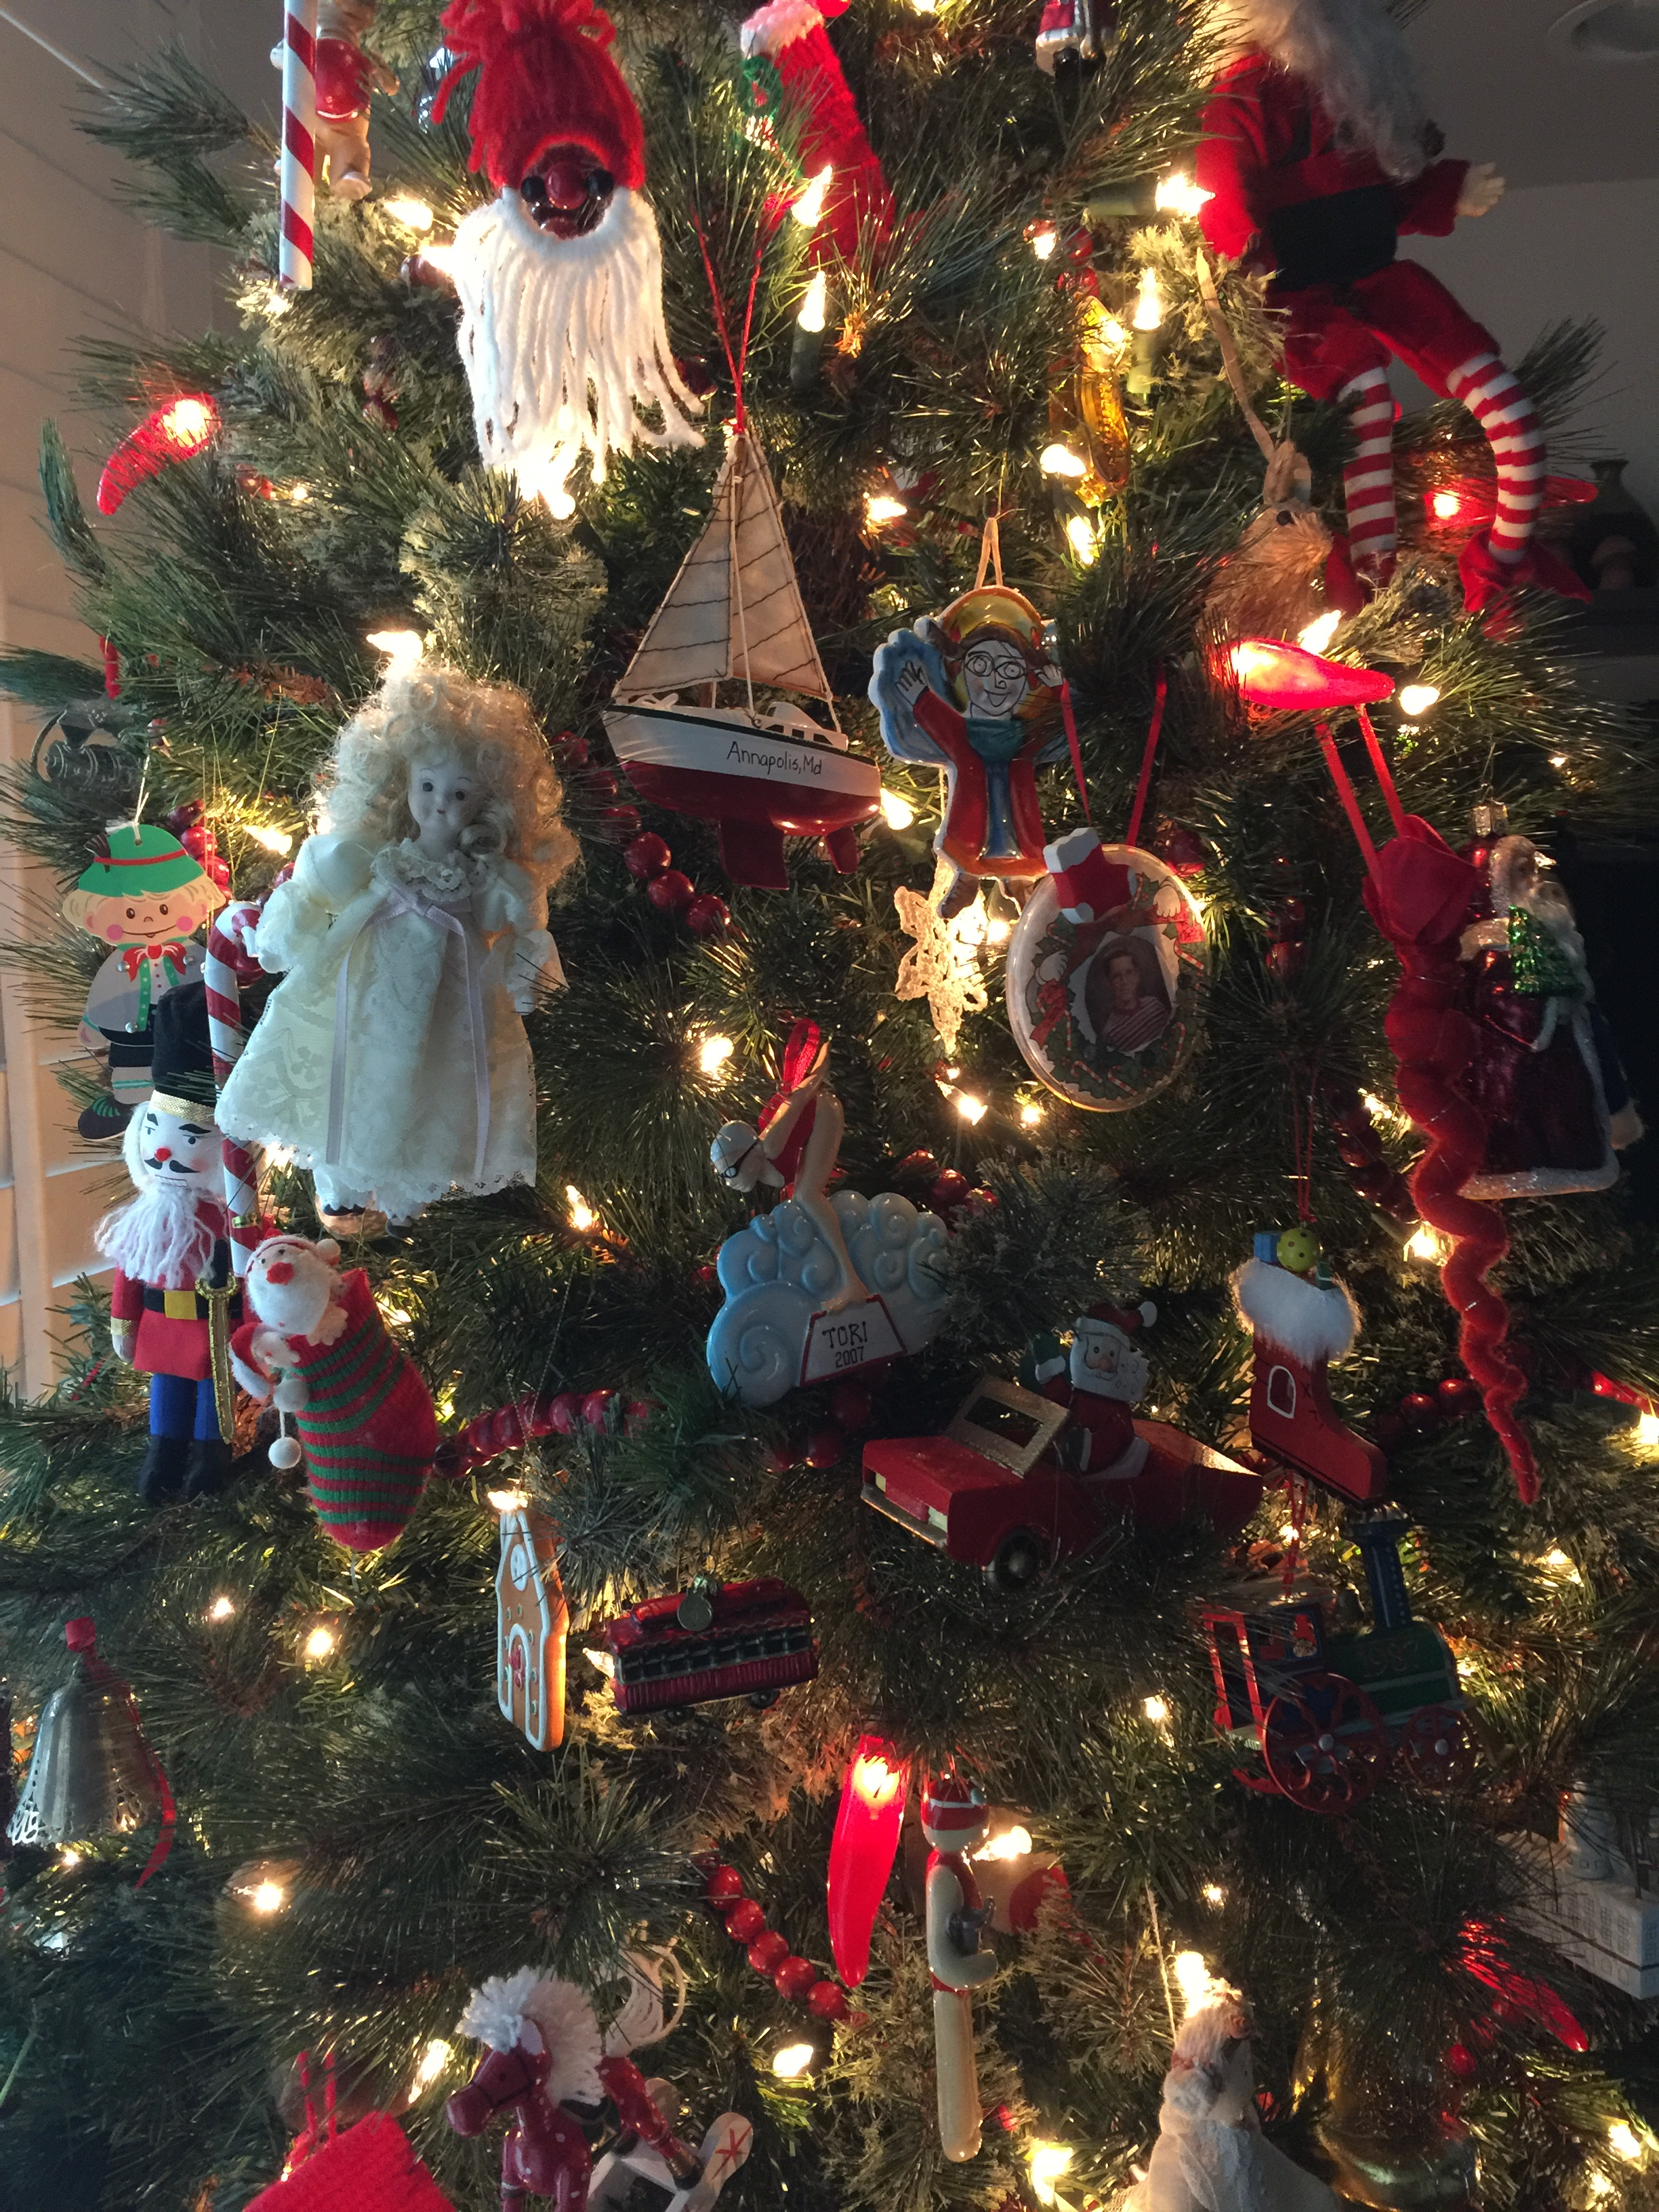 My Christmas tree decorated with all kinds of ornaments collected over the years.